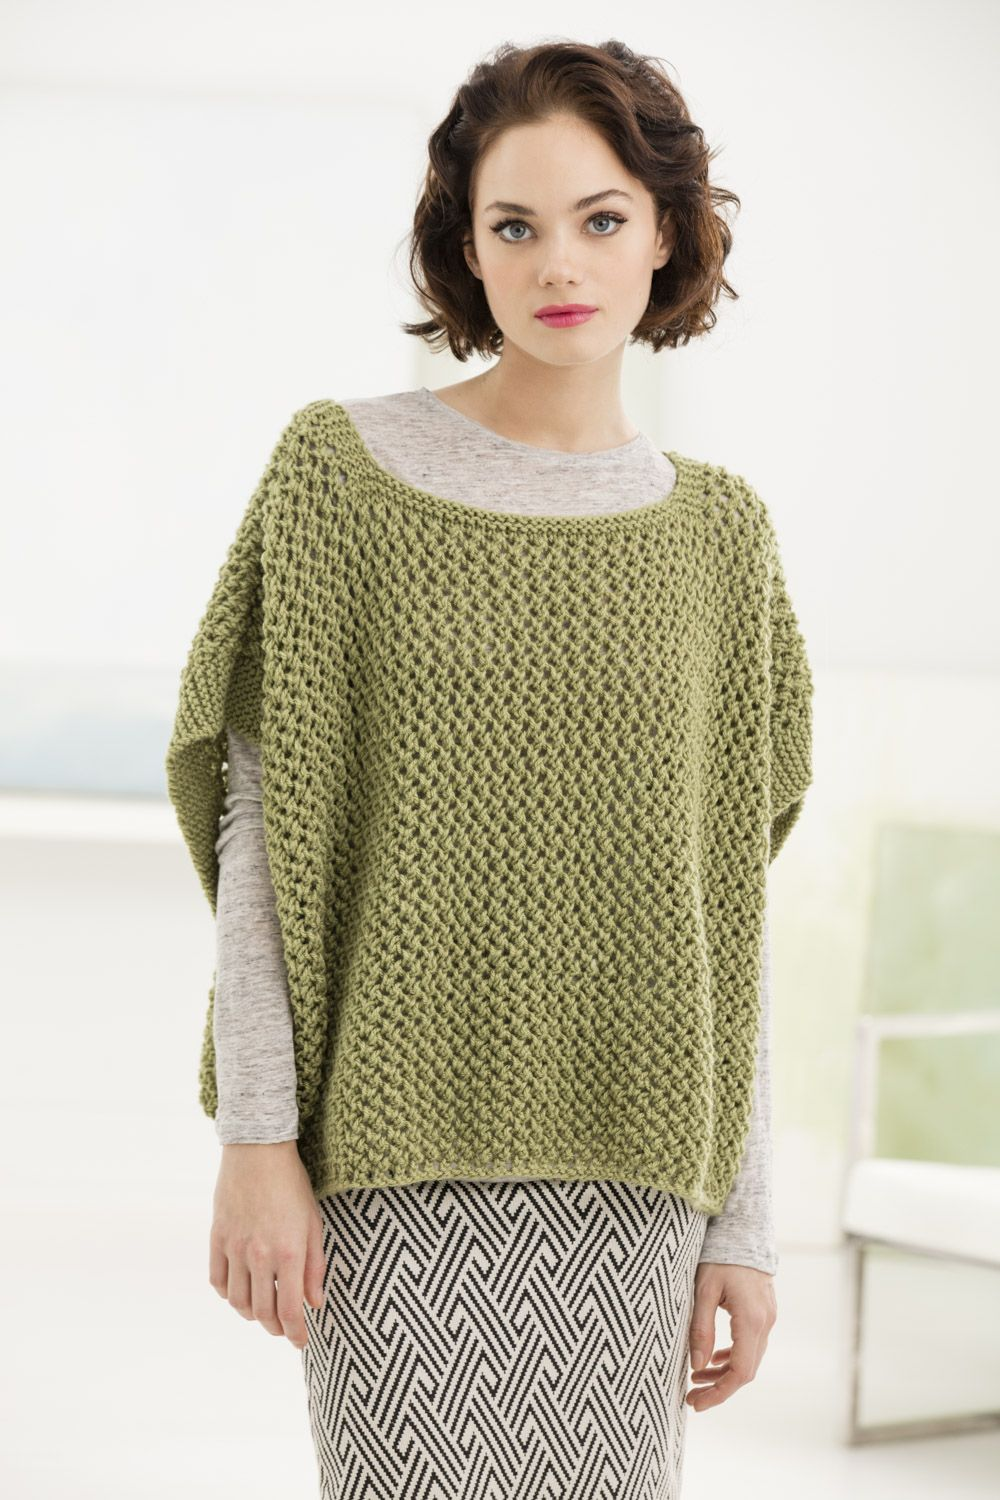 Luxury Free Knitting Patterns For Ponchos Uk Ornament - Sewing ...